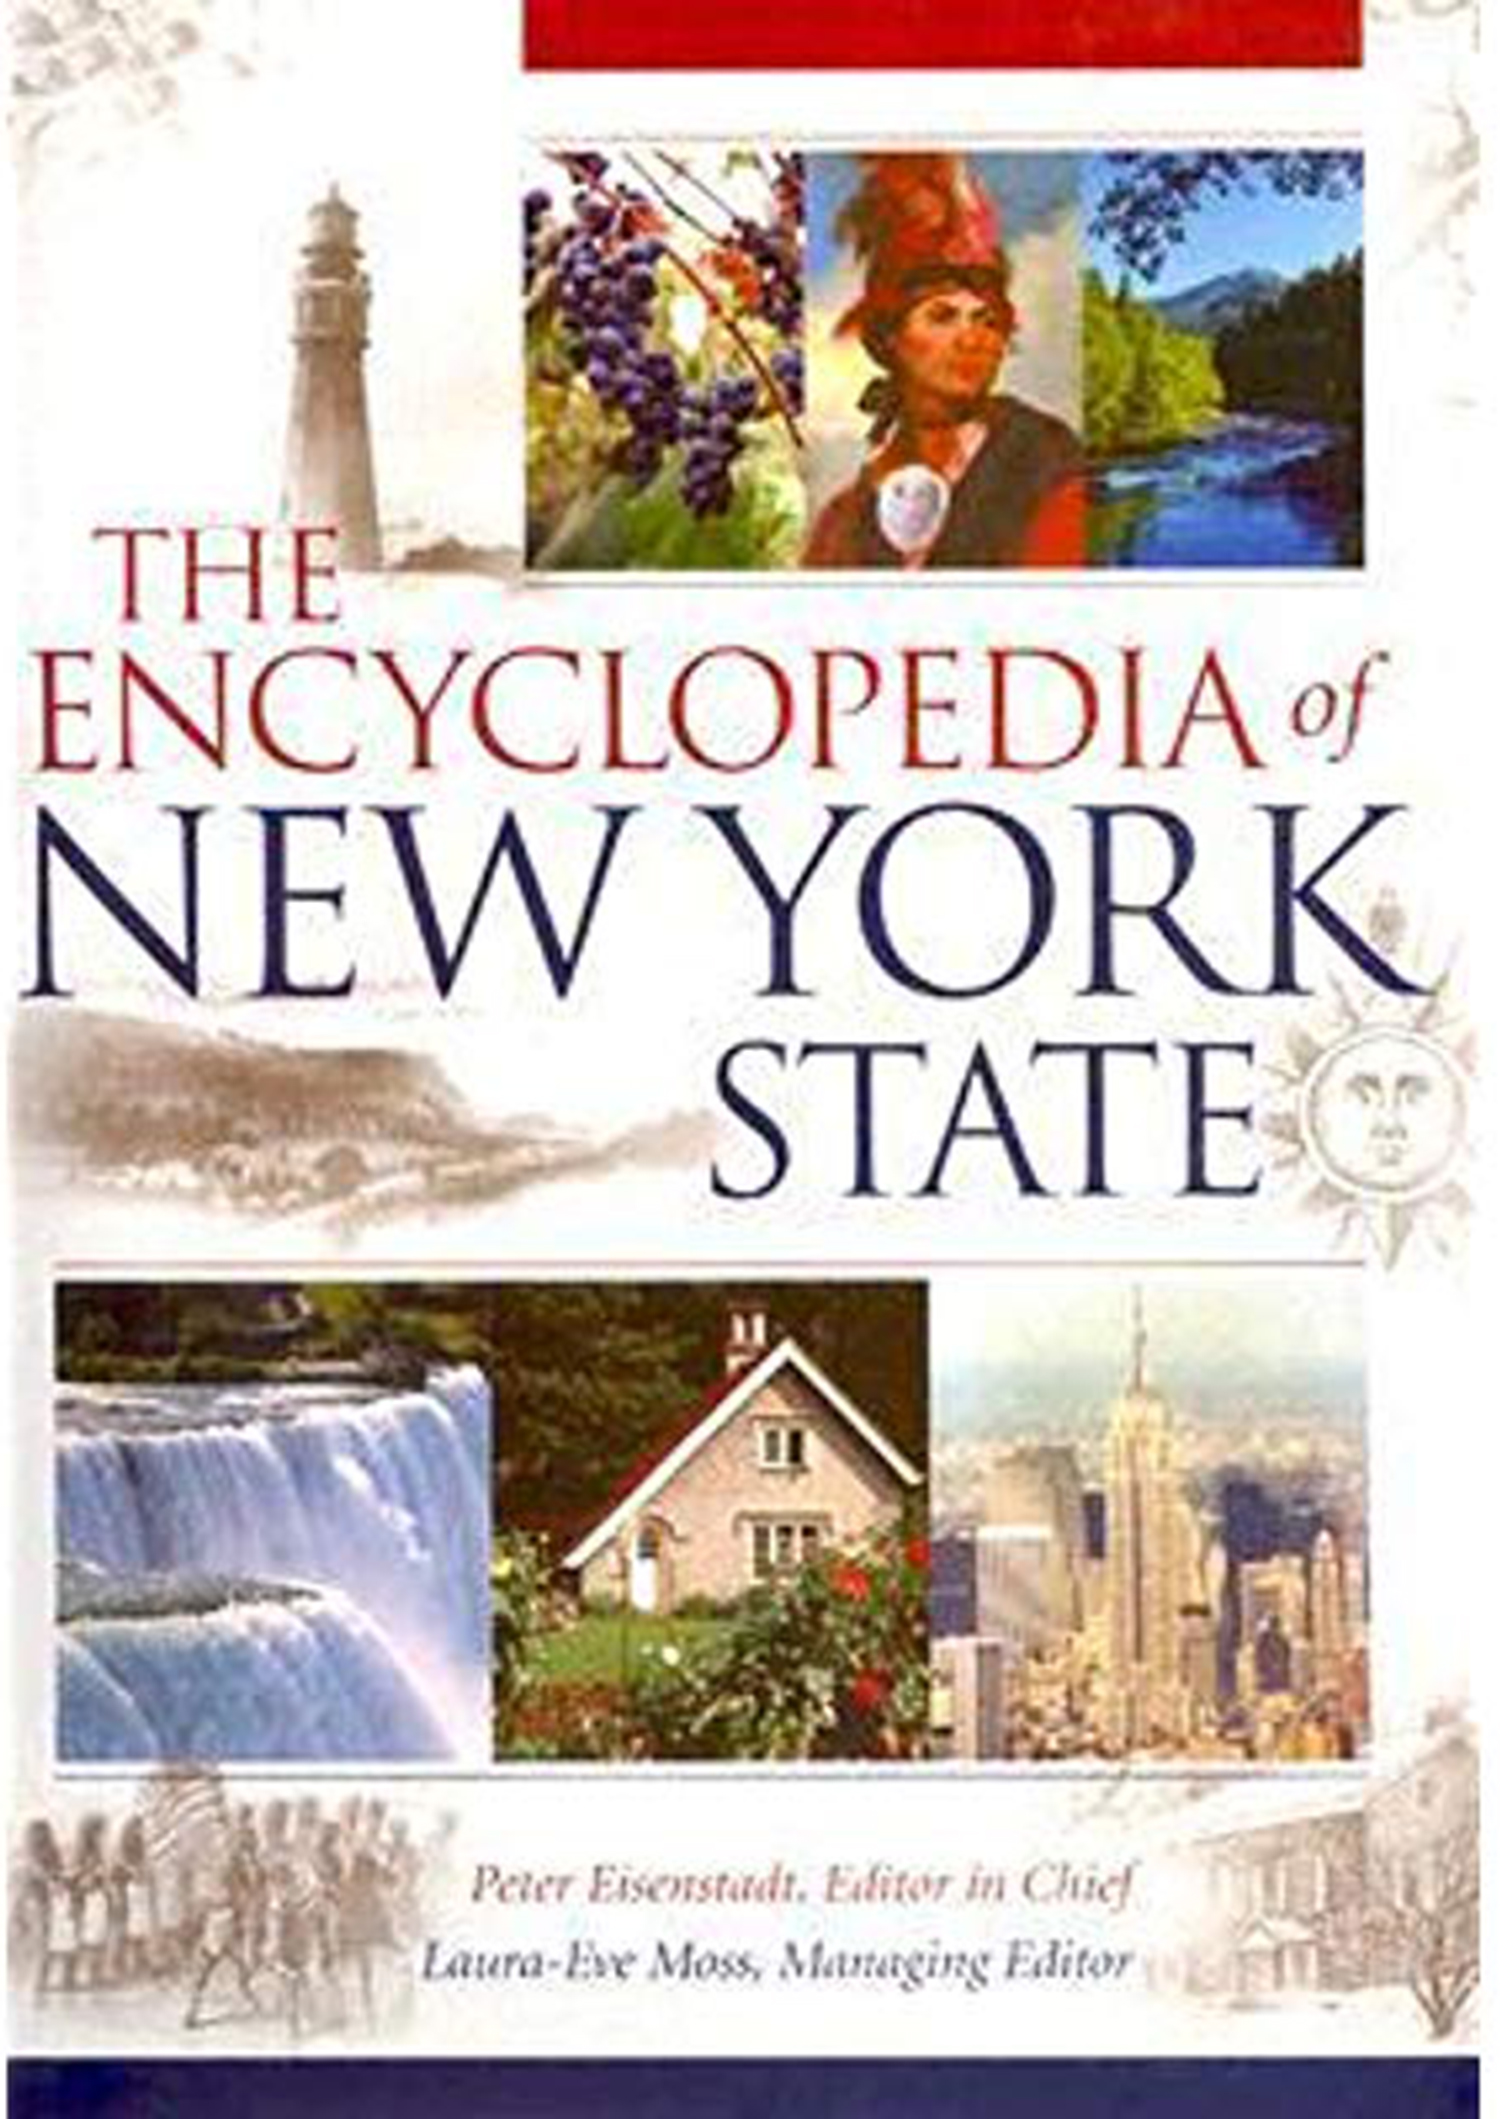 The Encyclopedia of New York State.jpg